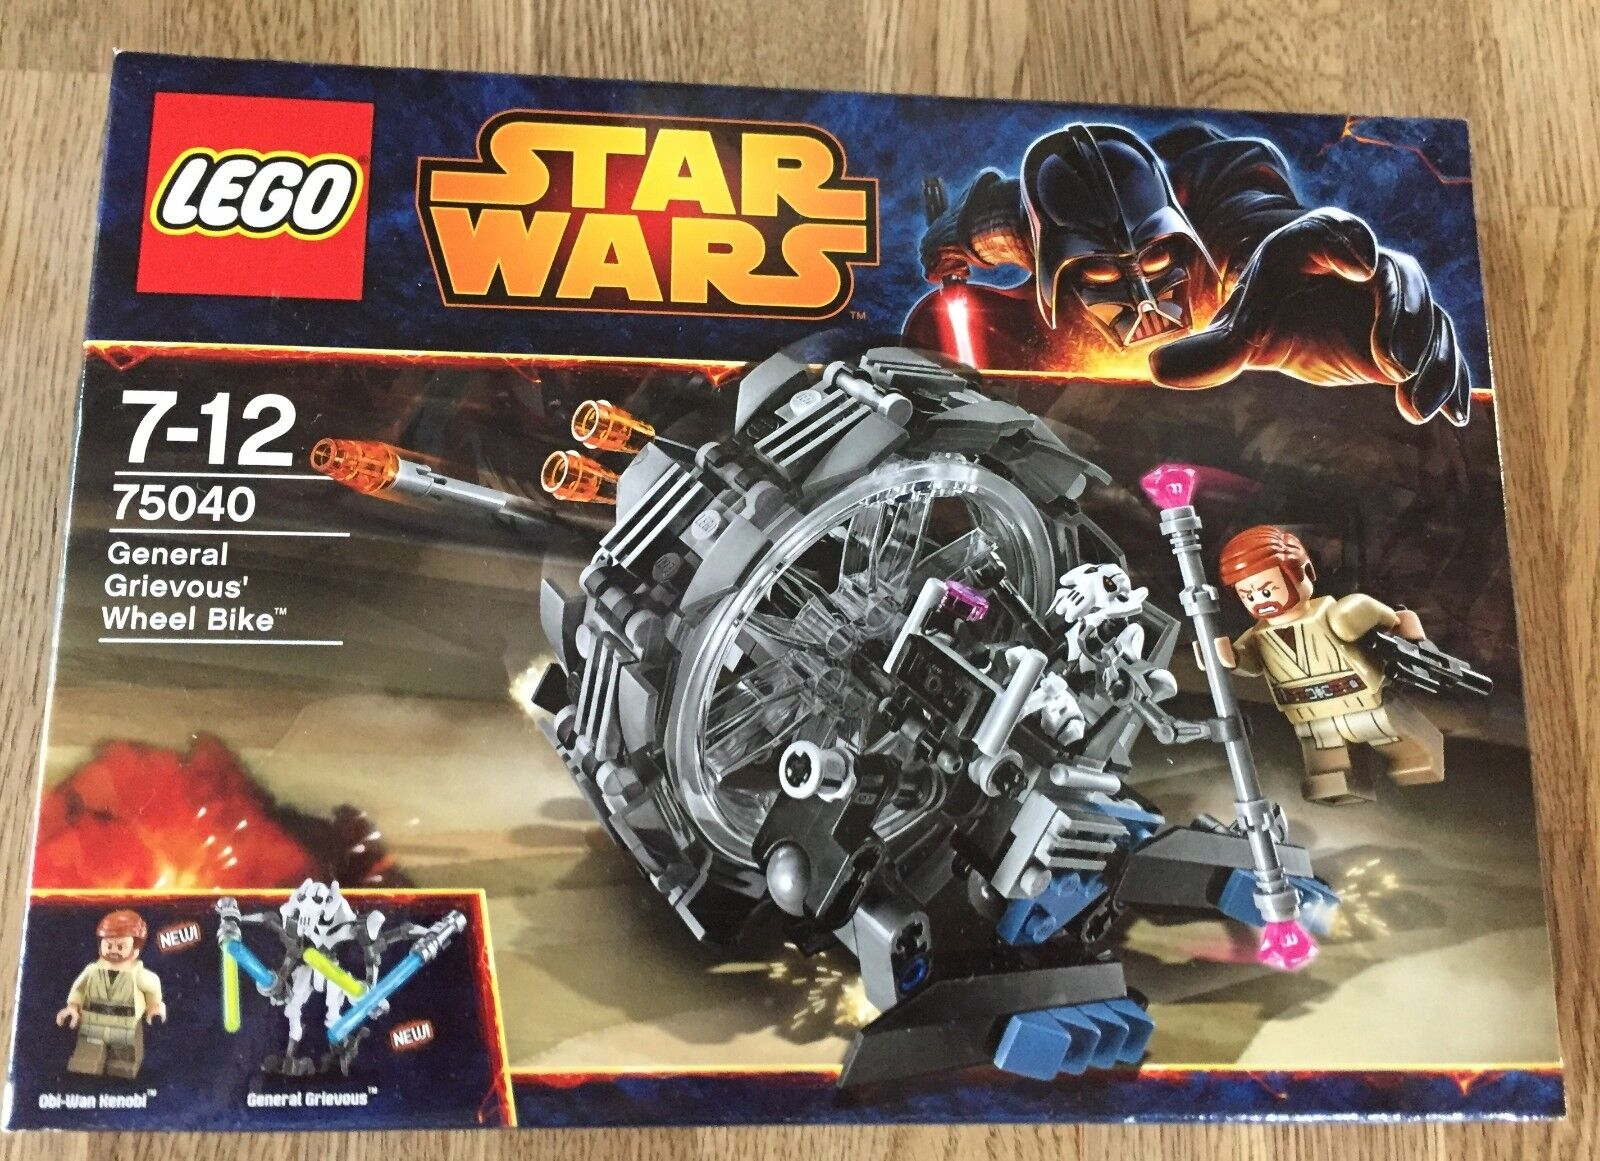 LEGO STAR WARS 75040 - General Grievous Wheel Bike NEU/OVP Sealed Obi Wan Kenobi